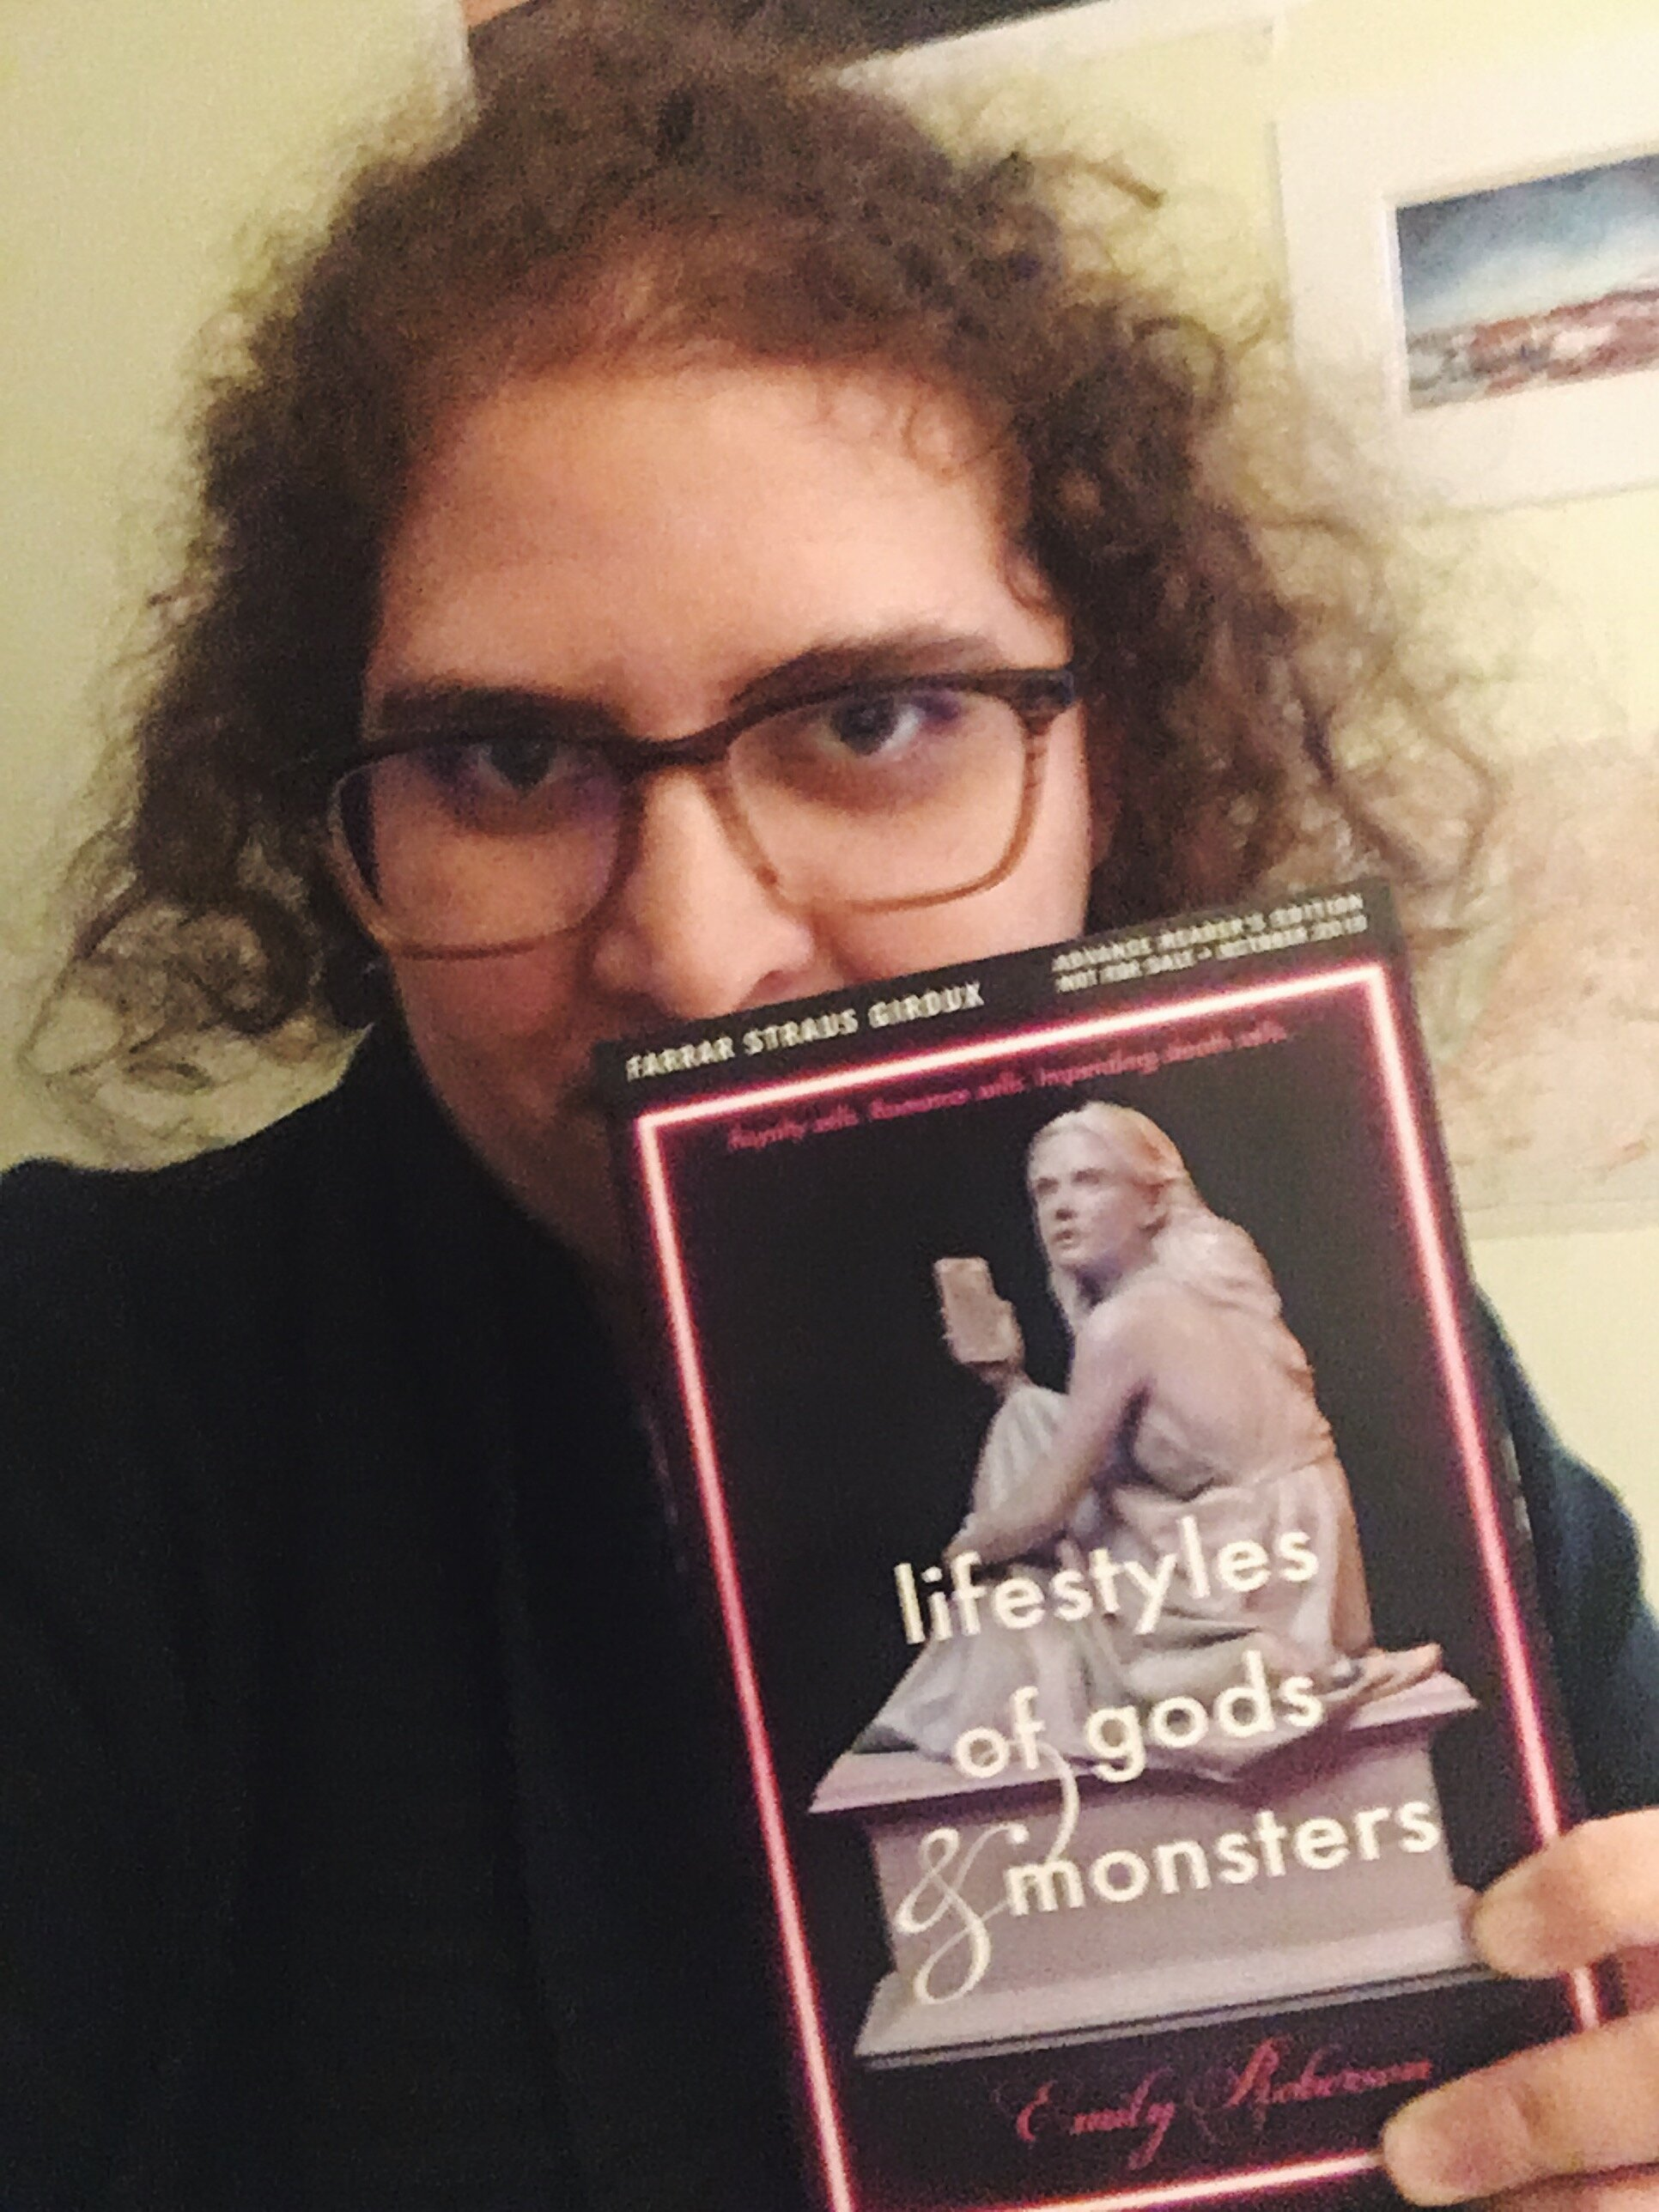 It's a #selfiewithbooks, please focus on the pretty book and not my sleepy face!